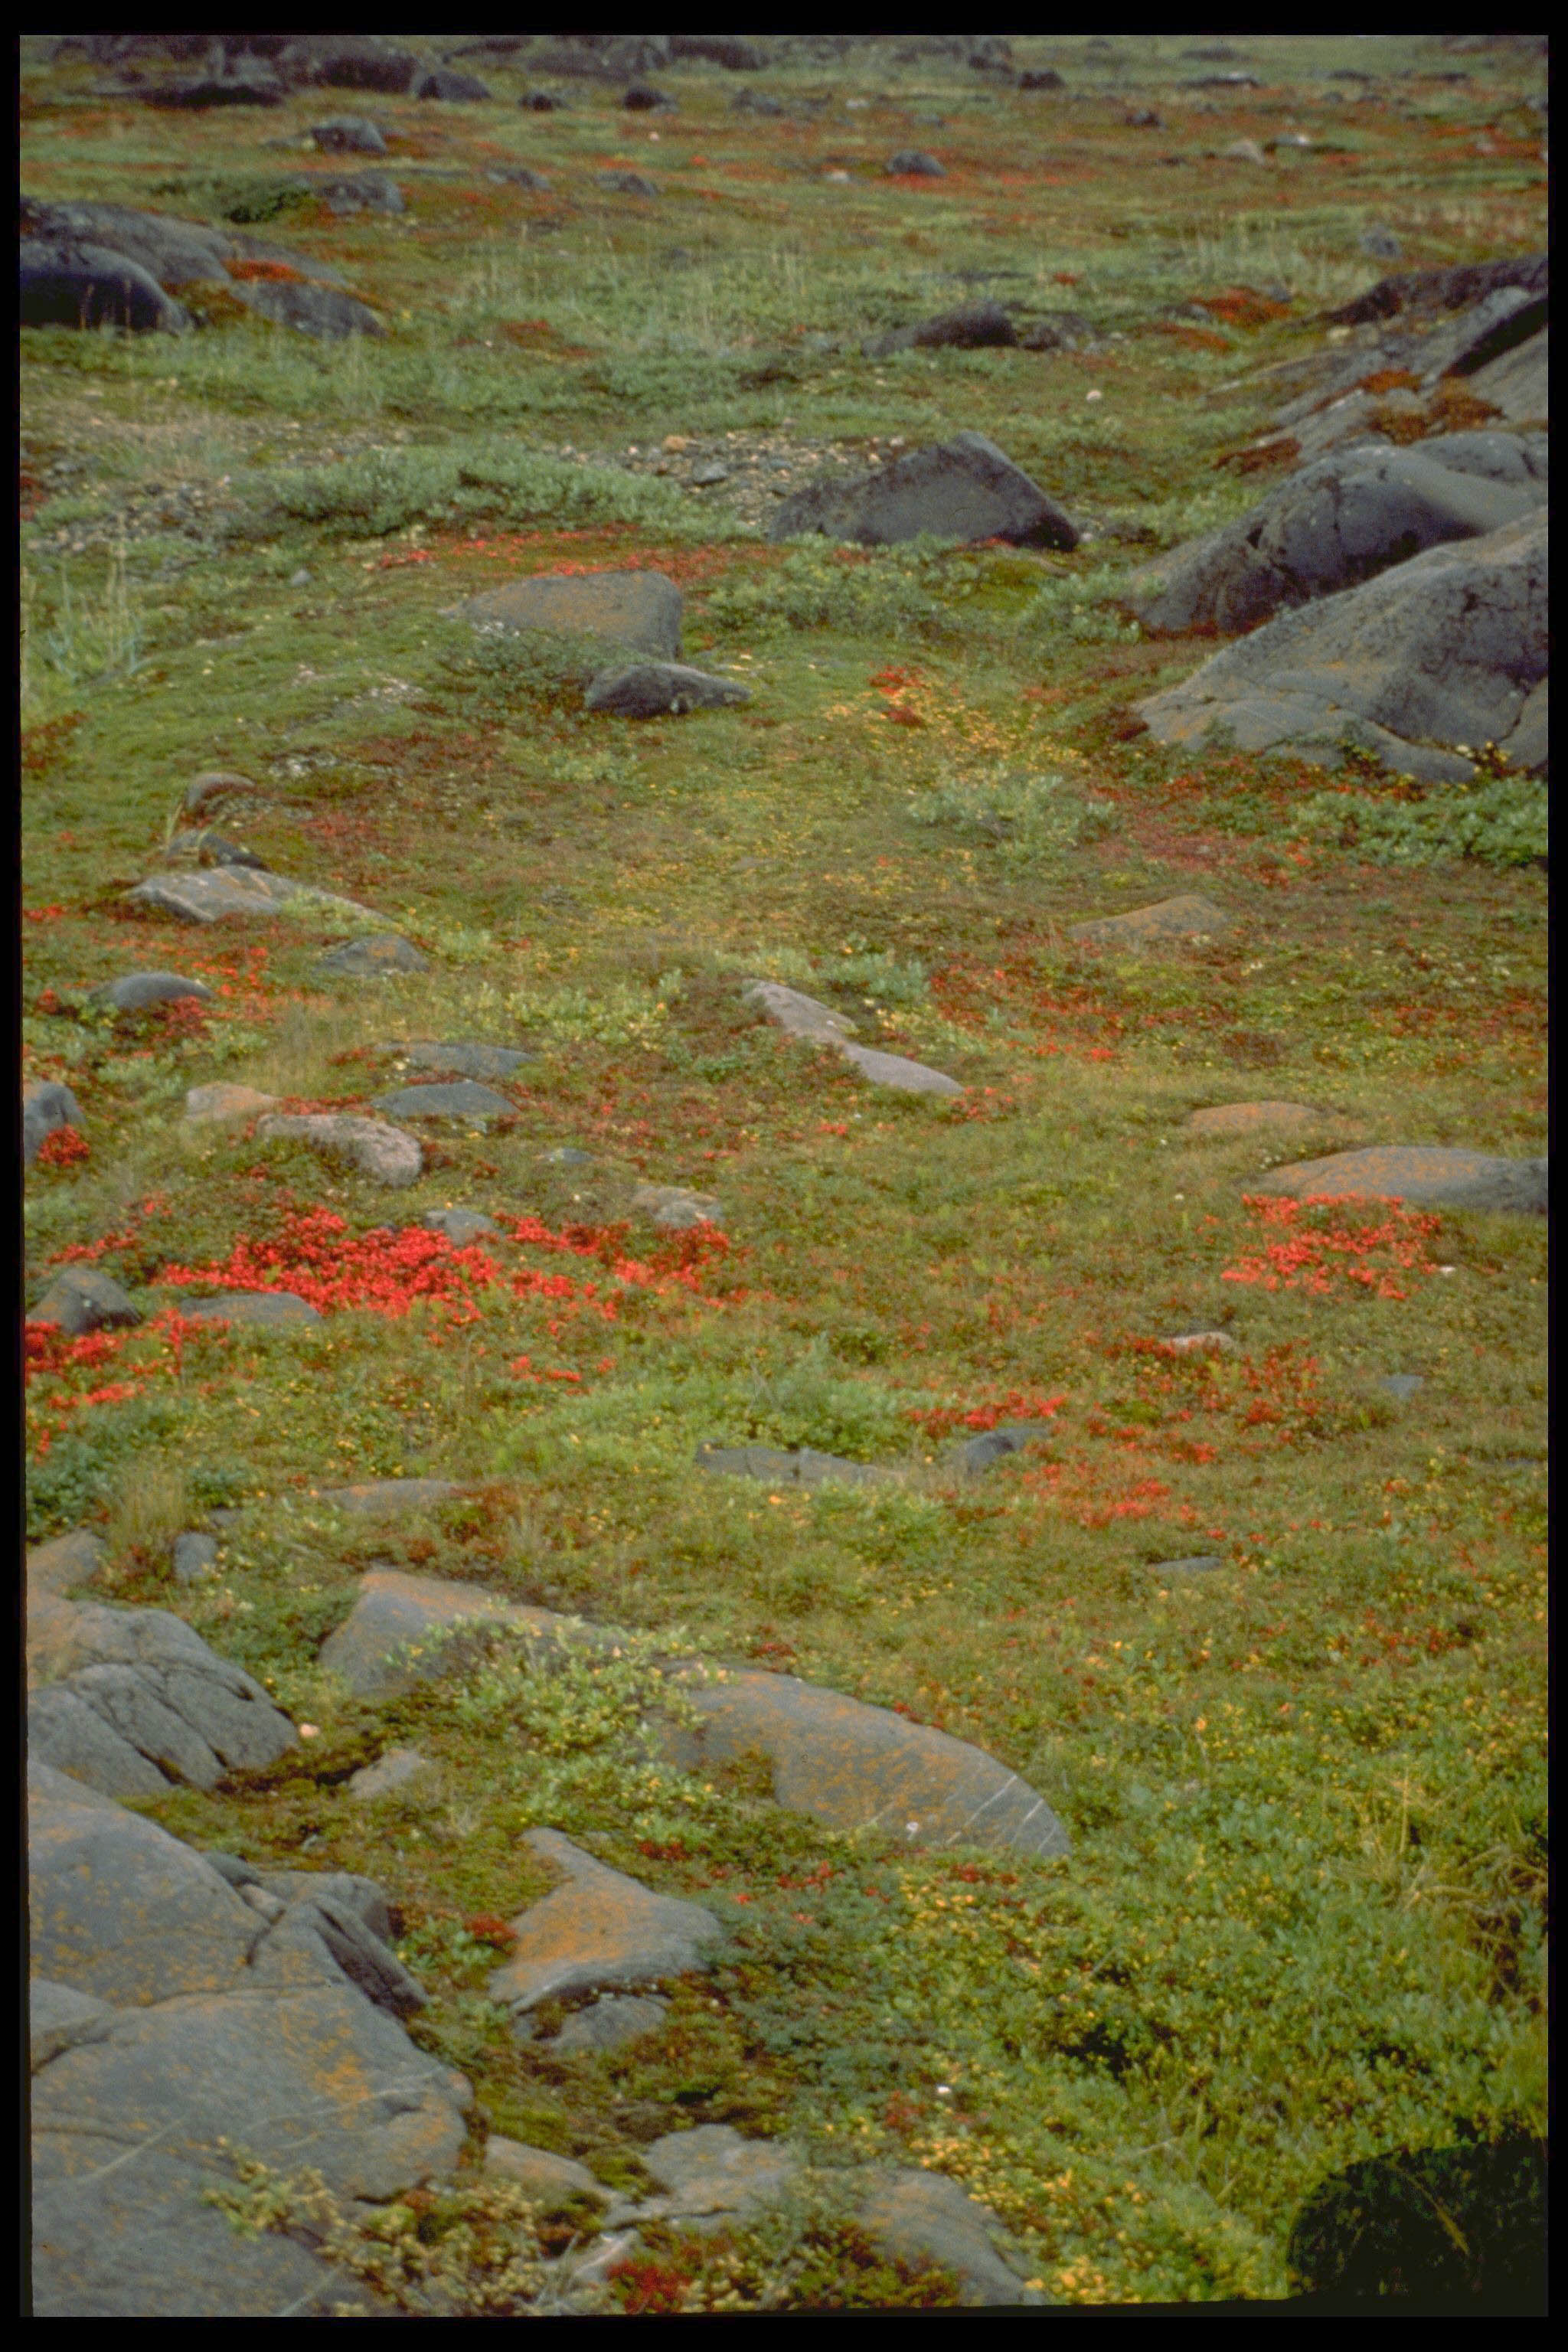 Tundra Vegetation